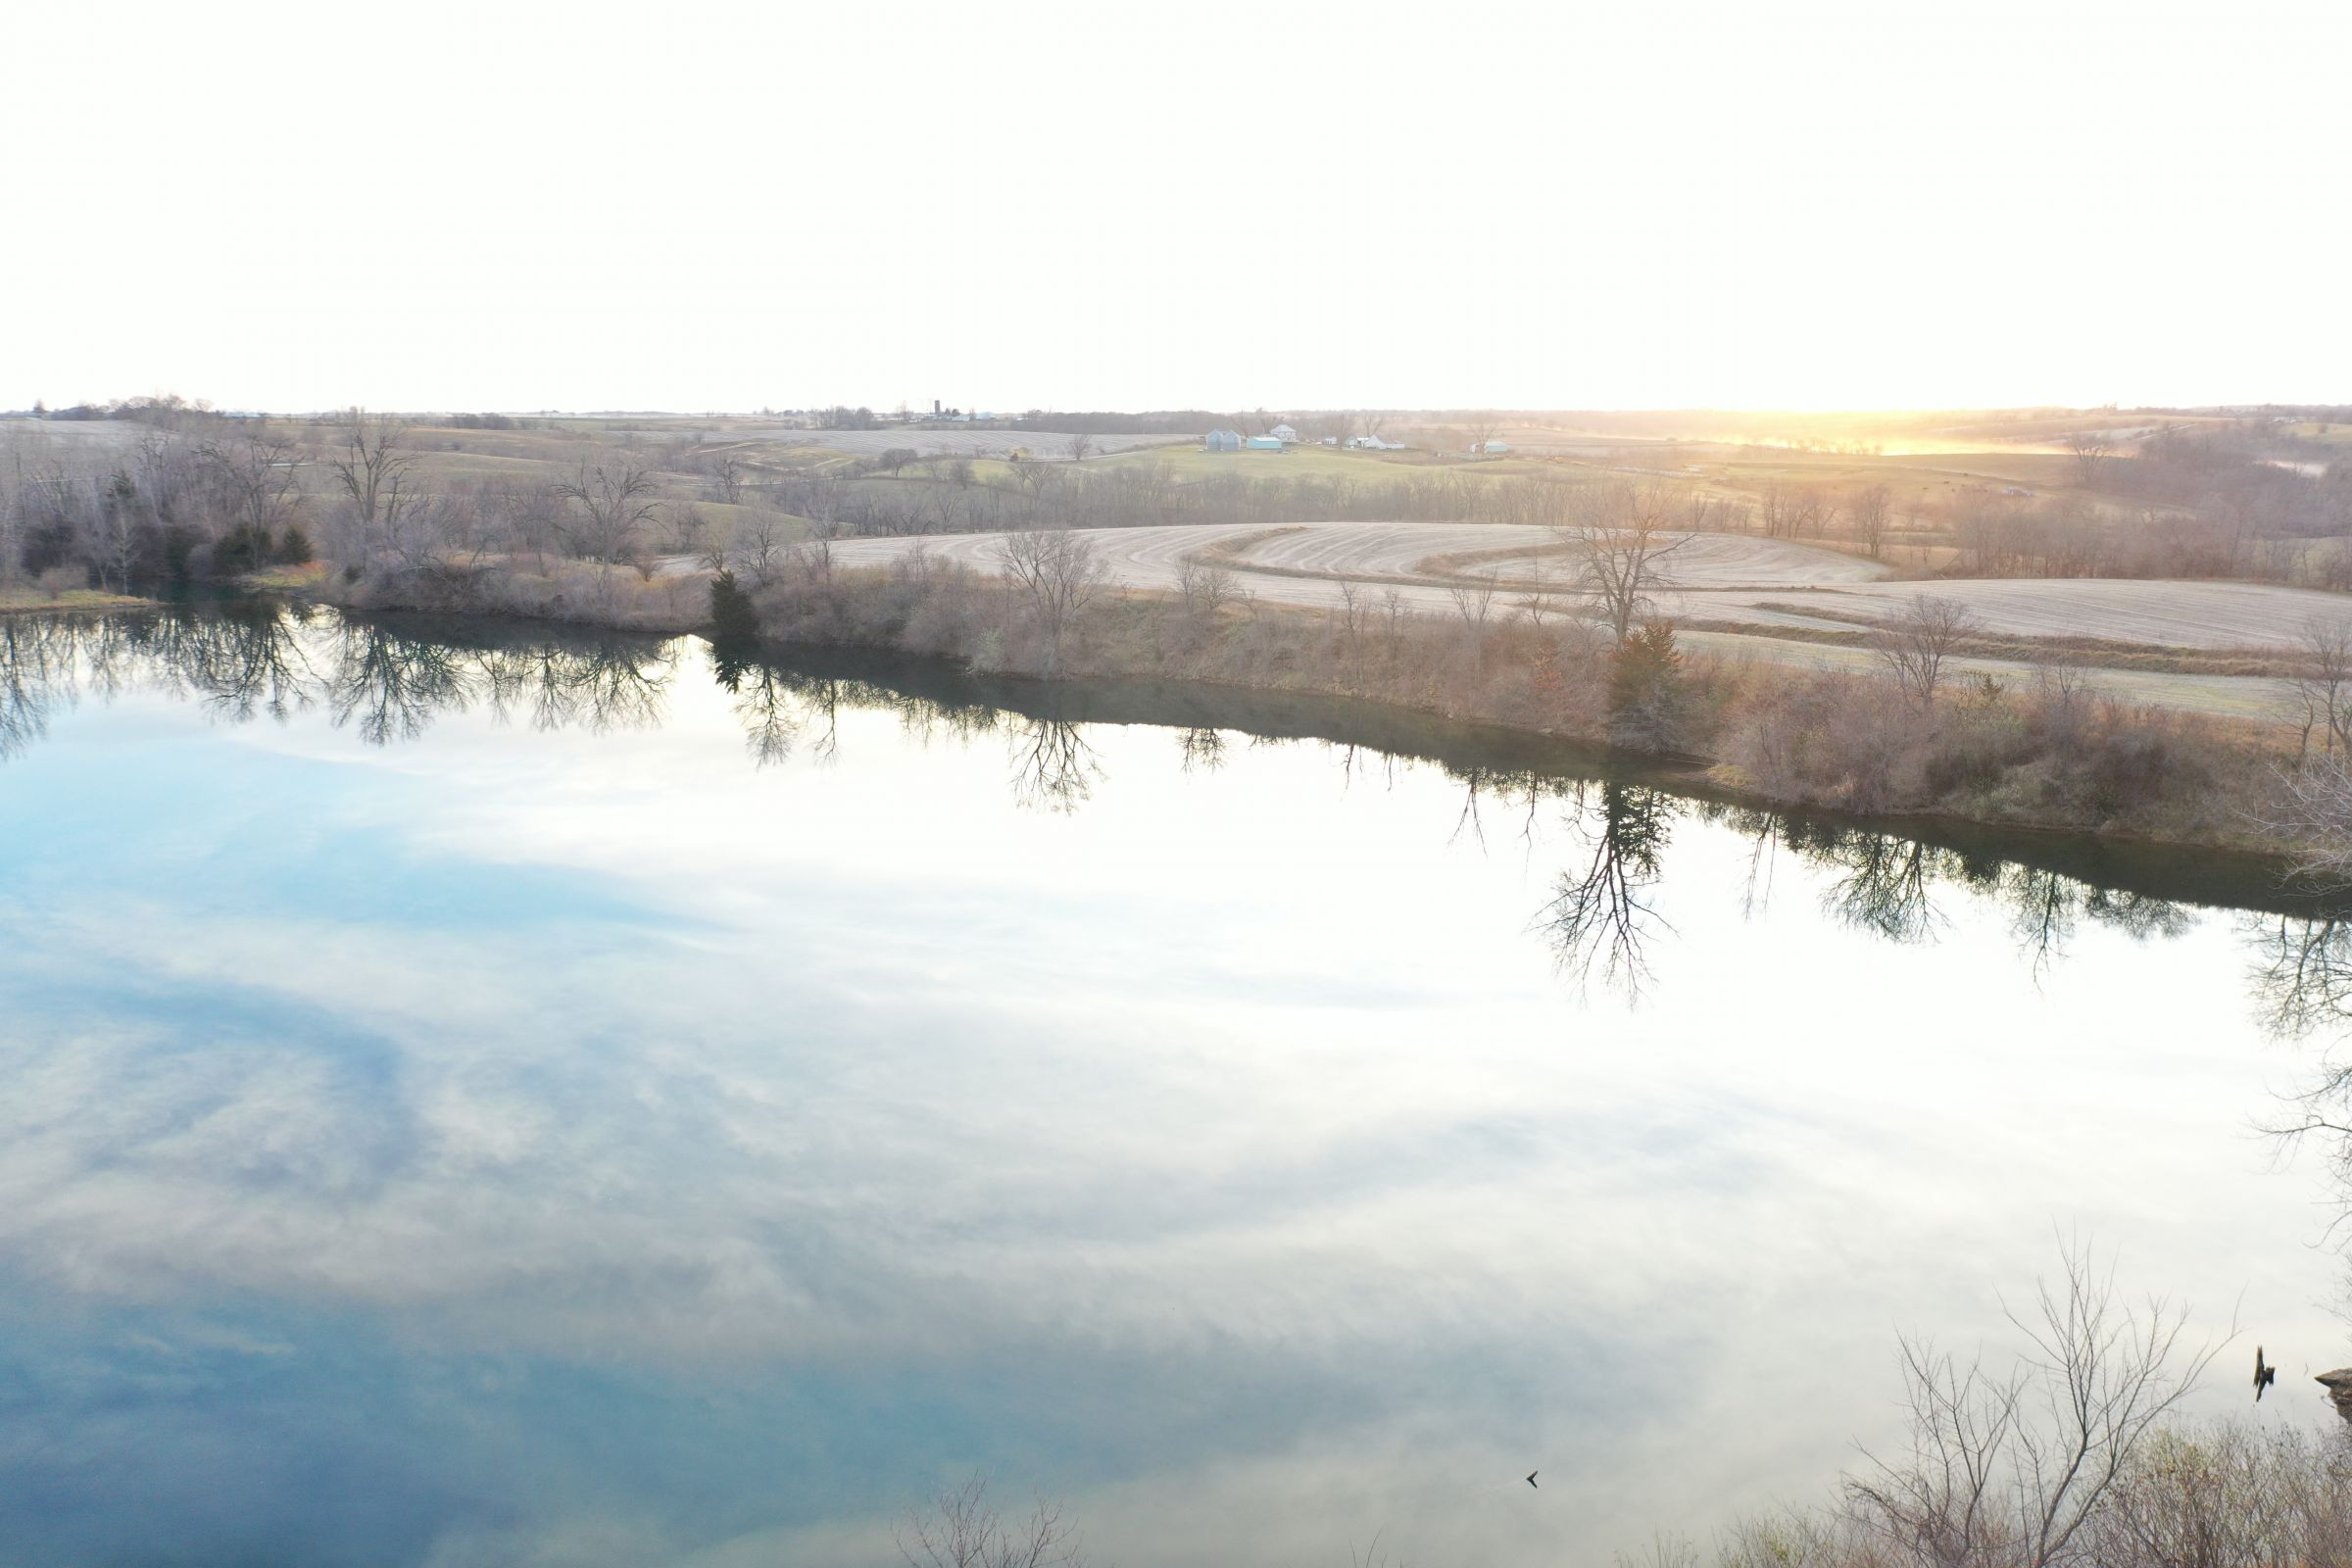 land-marion-county-iowa-60-acres-listing-number-15303-5-2020-12-15-222445.jpg